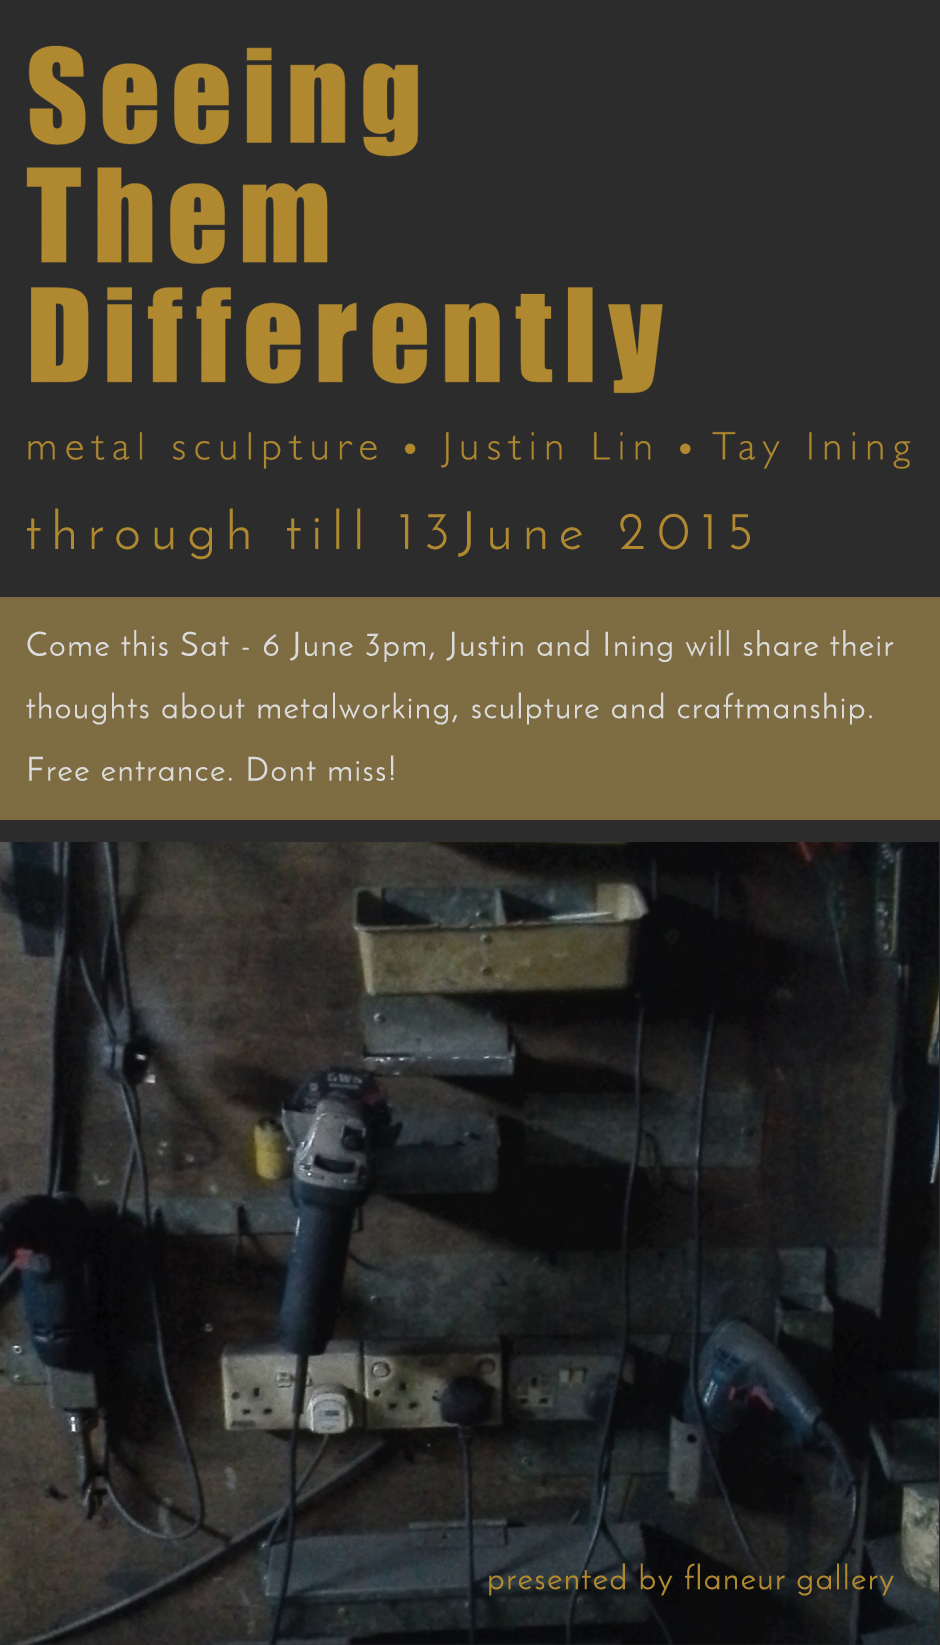 Artists' Talk, Justin Lin and Tay Ining, 3pm at flaneur gallery